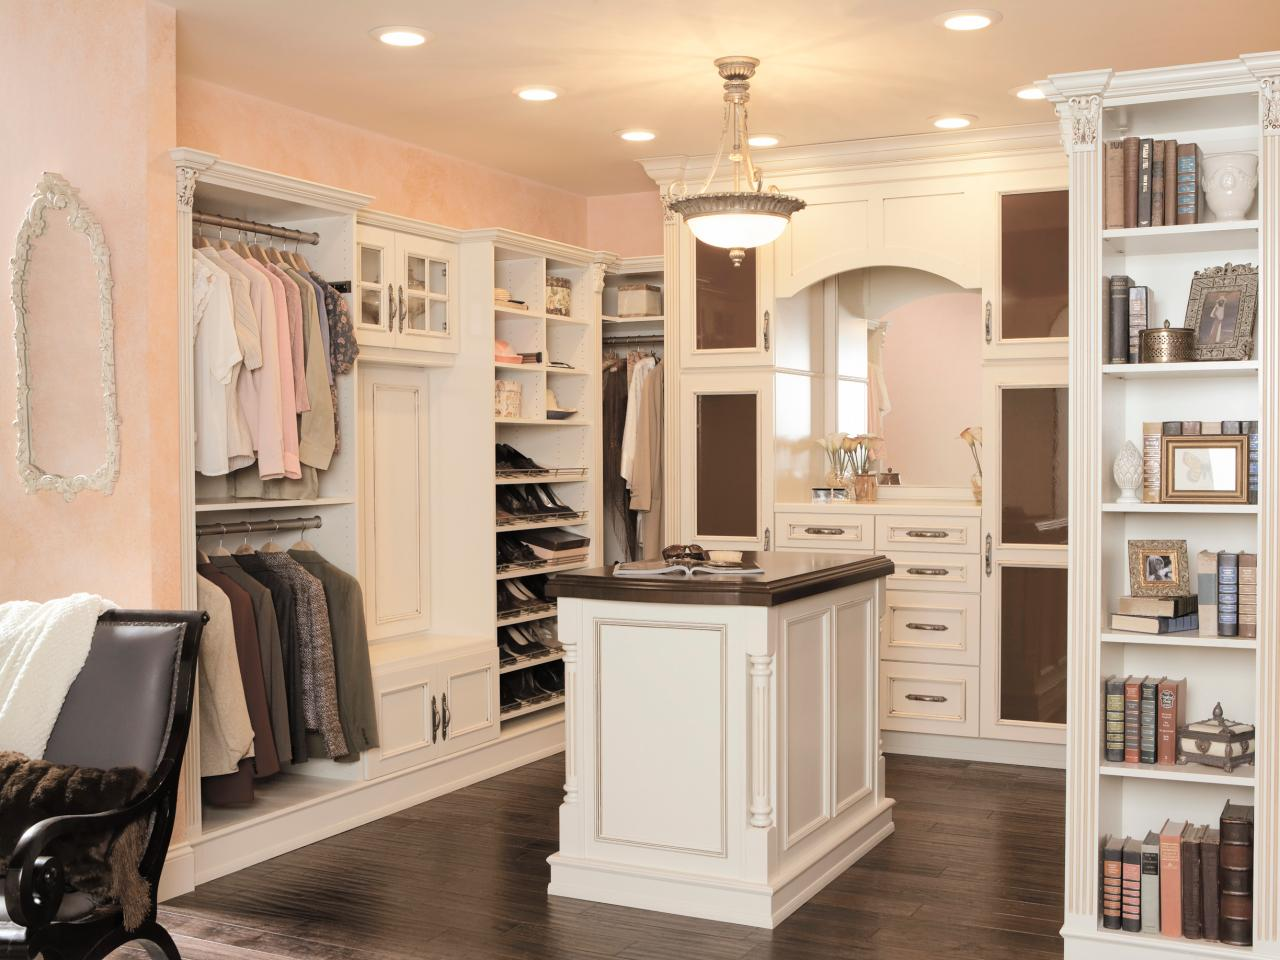 walk-in closet custom made